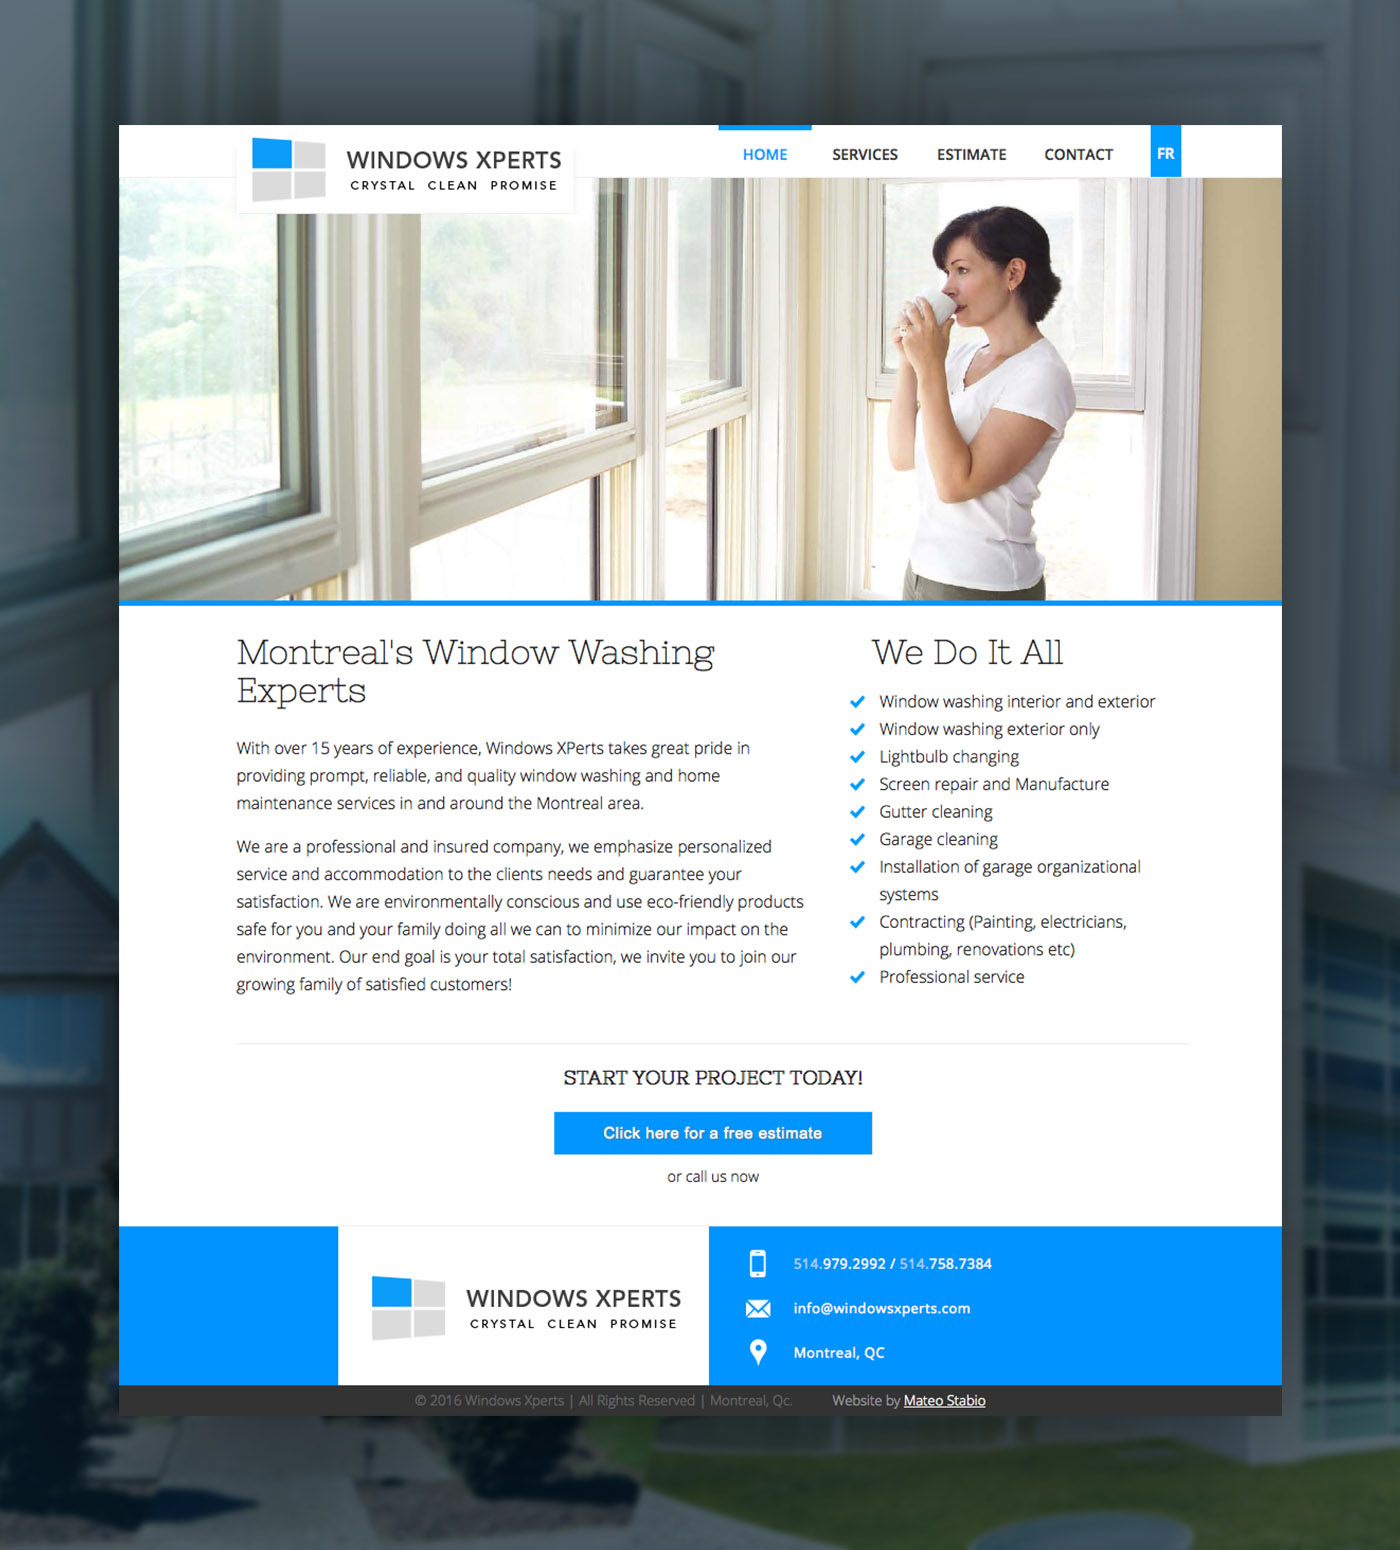 Clean white and blue website design header image with blue footer clean window cleaning company website design theme